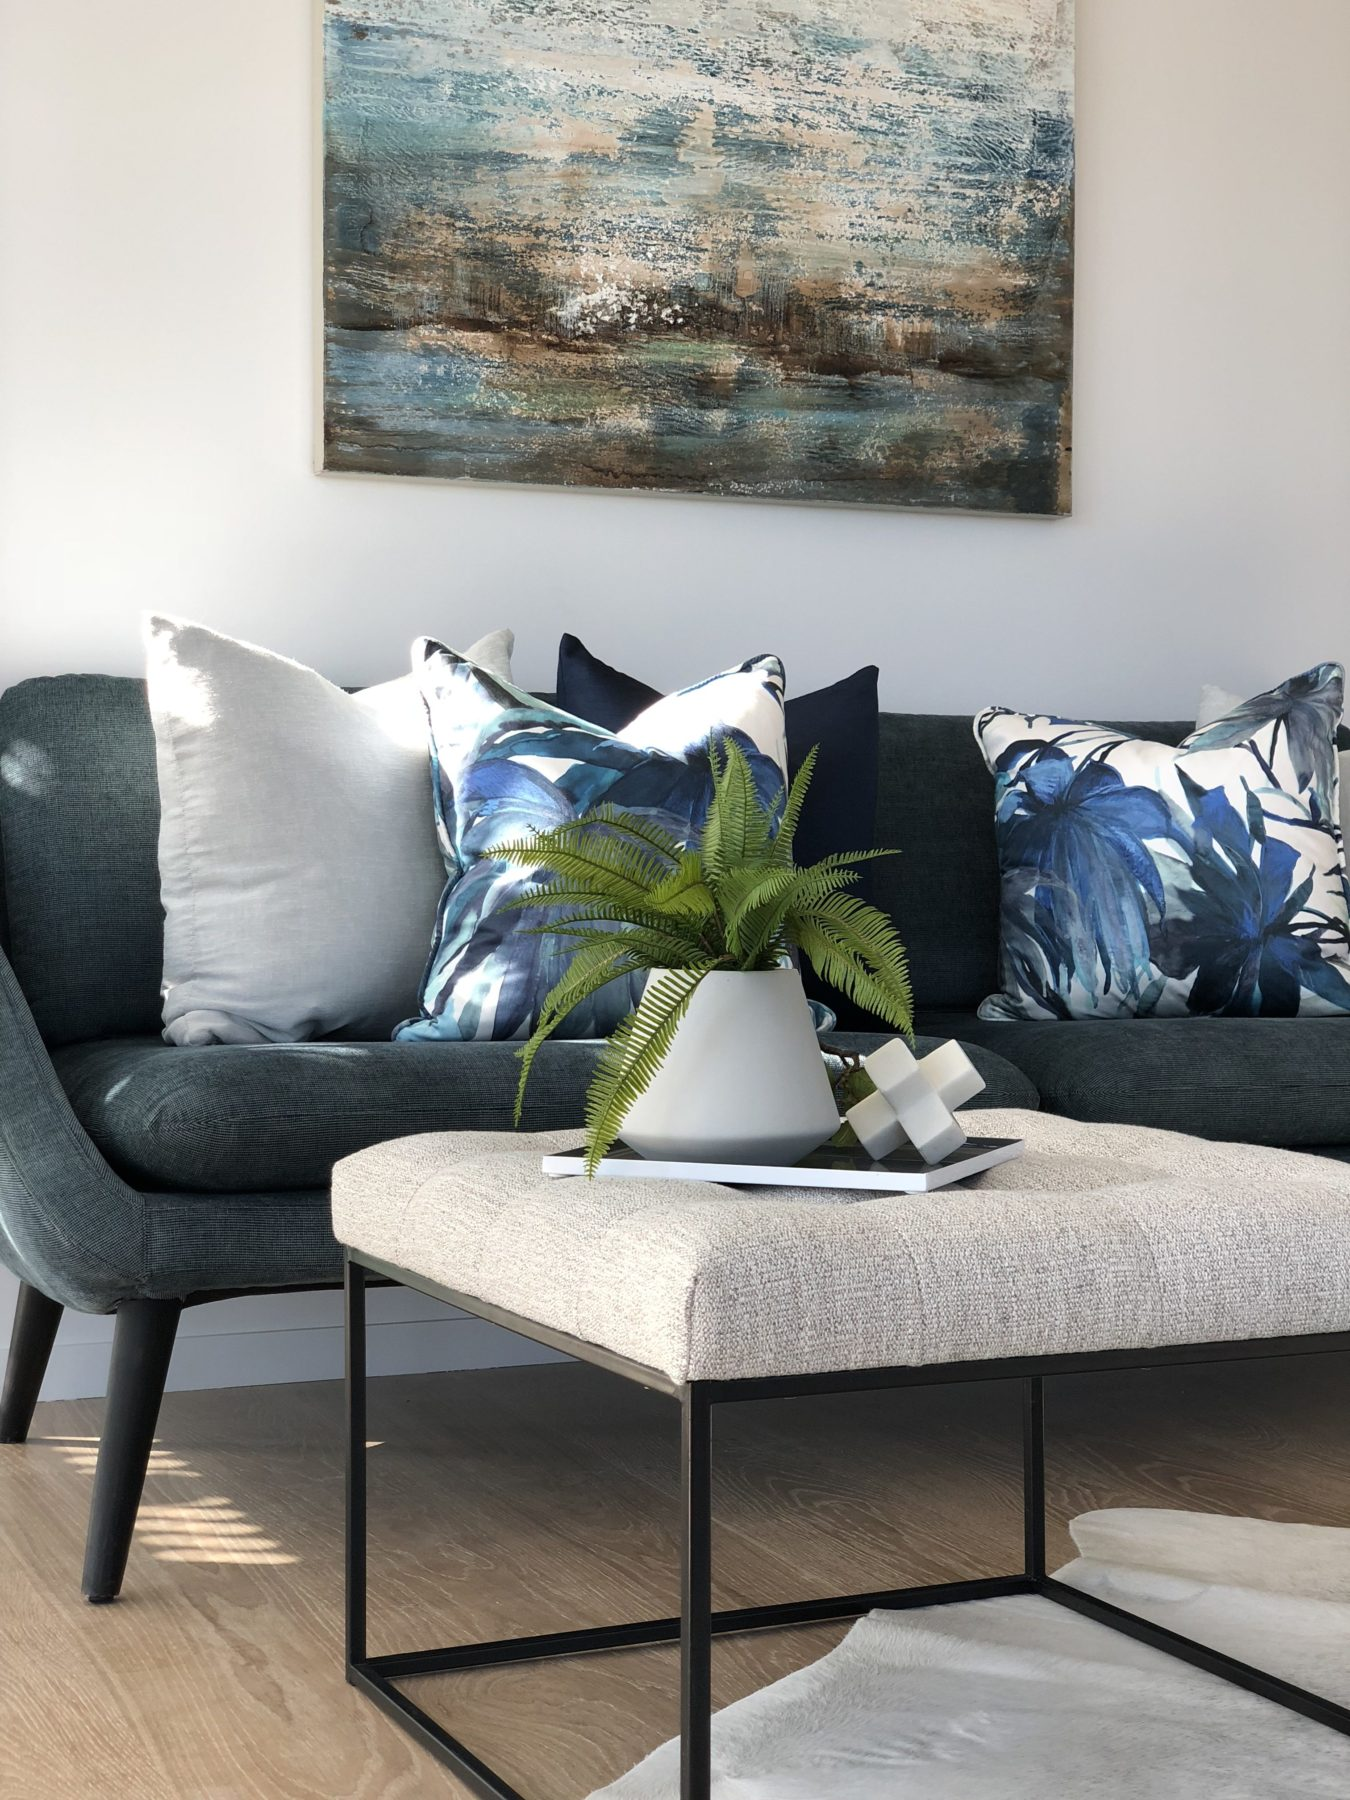 living room in modern apartment with wood floors, with curved blue couch, funky printed cushions and ottoman coffee table